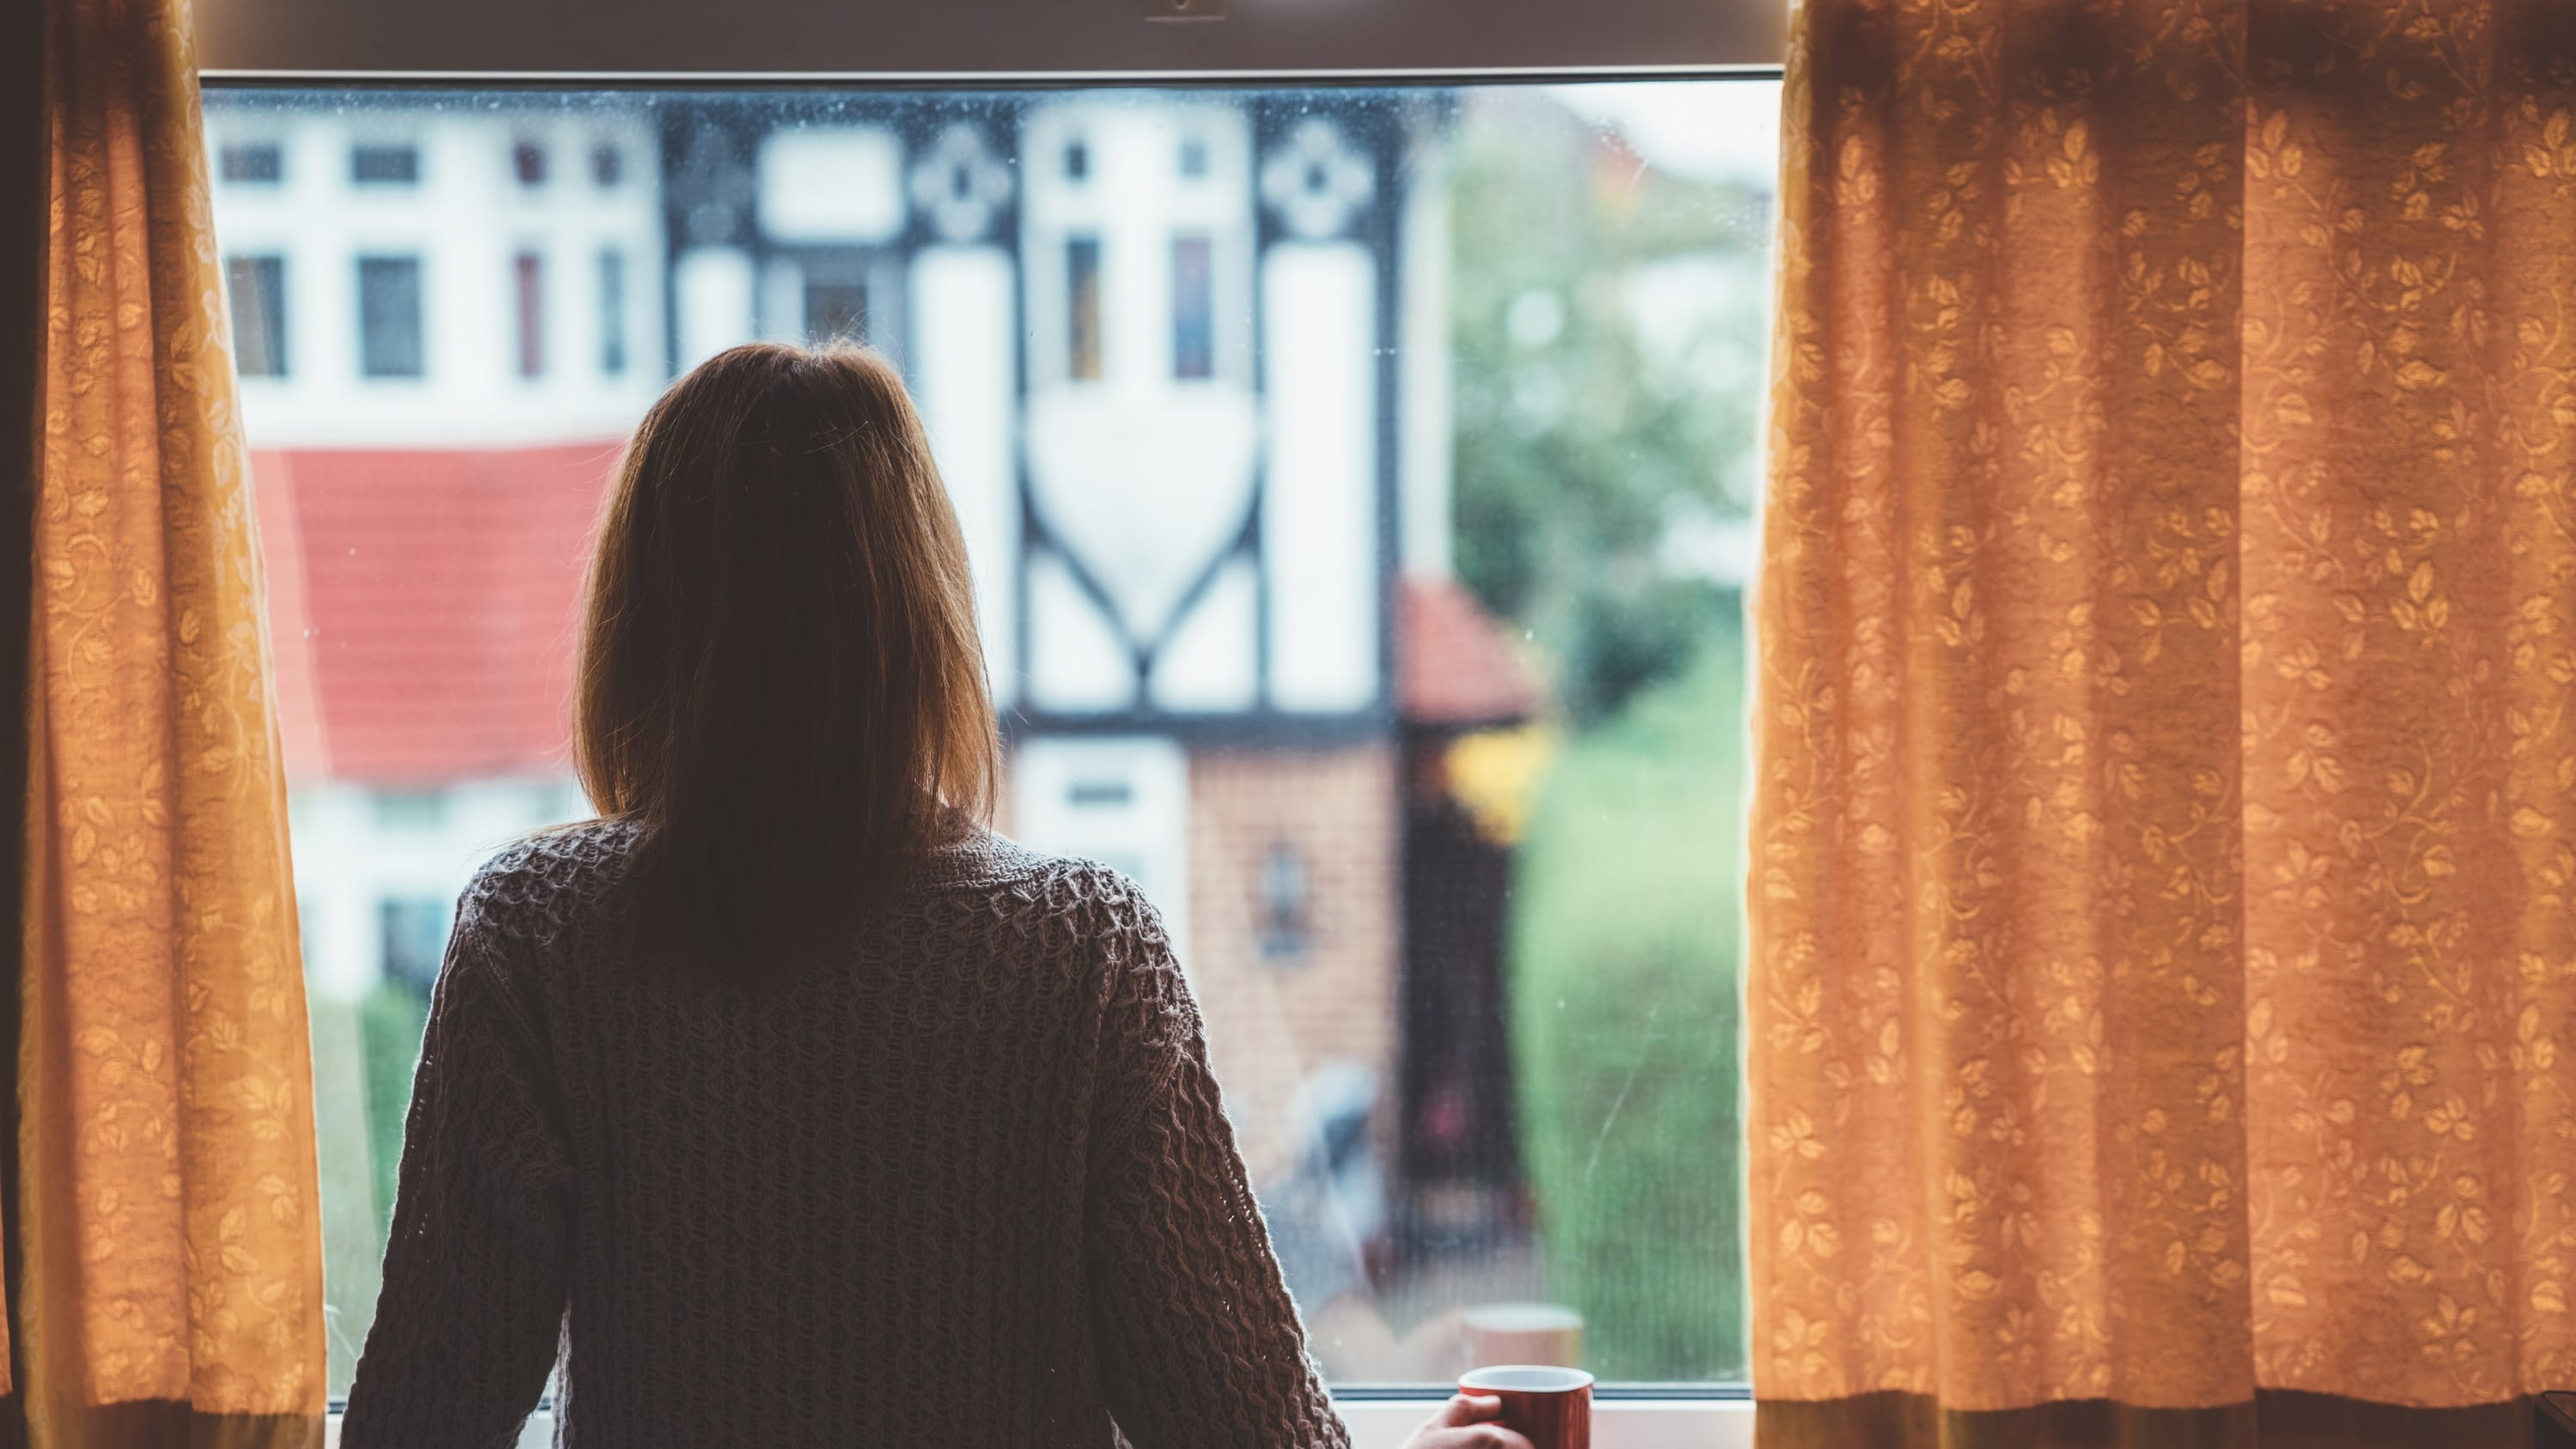 woman looking out a window, dealing with social isolation from COVID-19